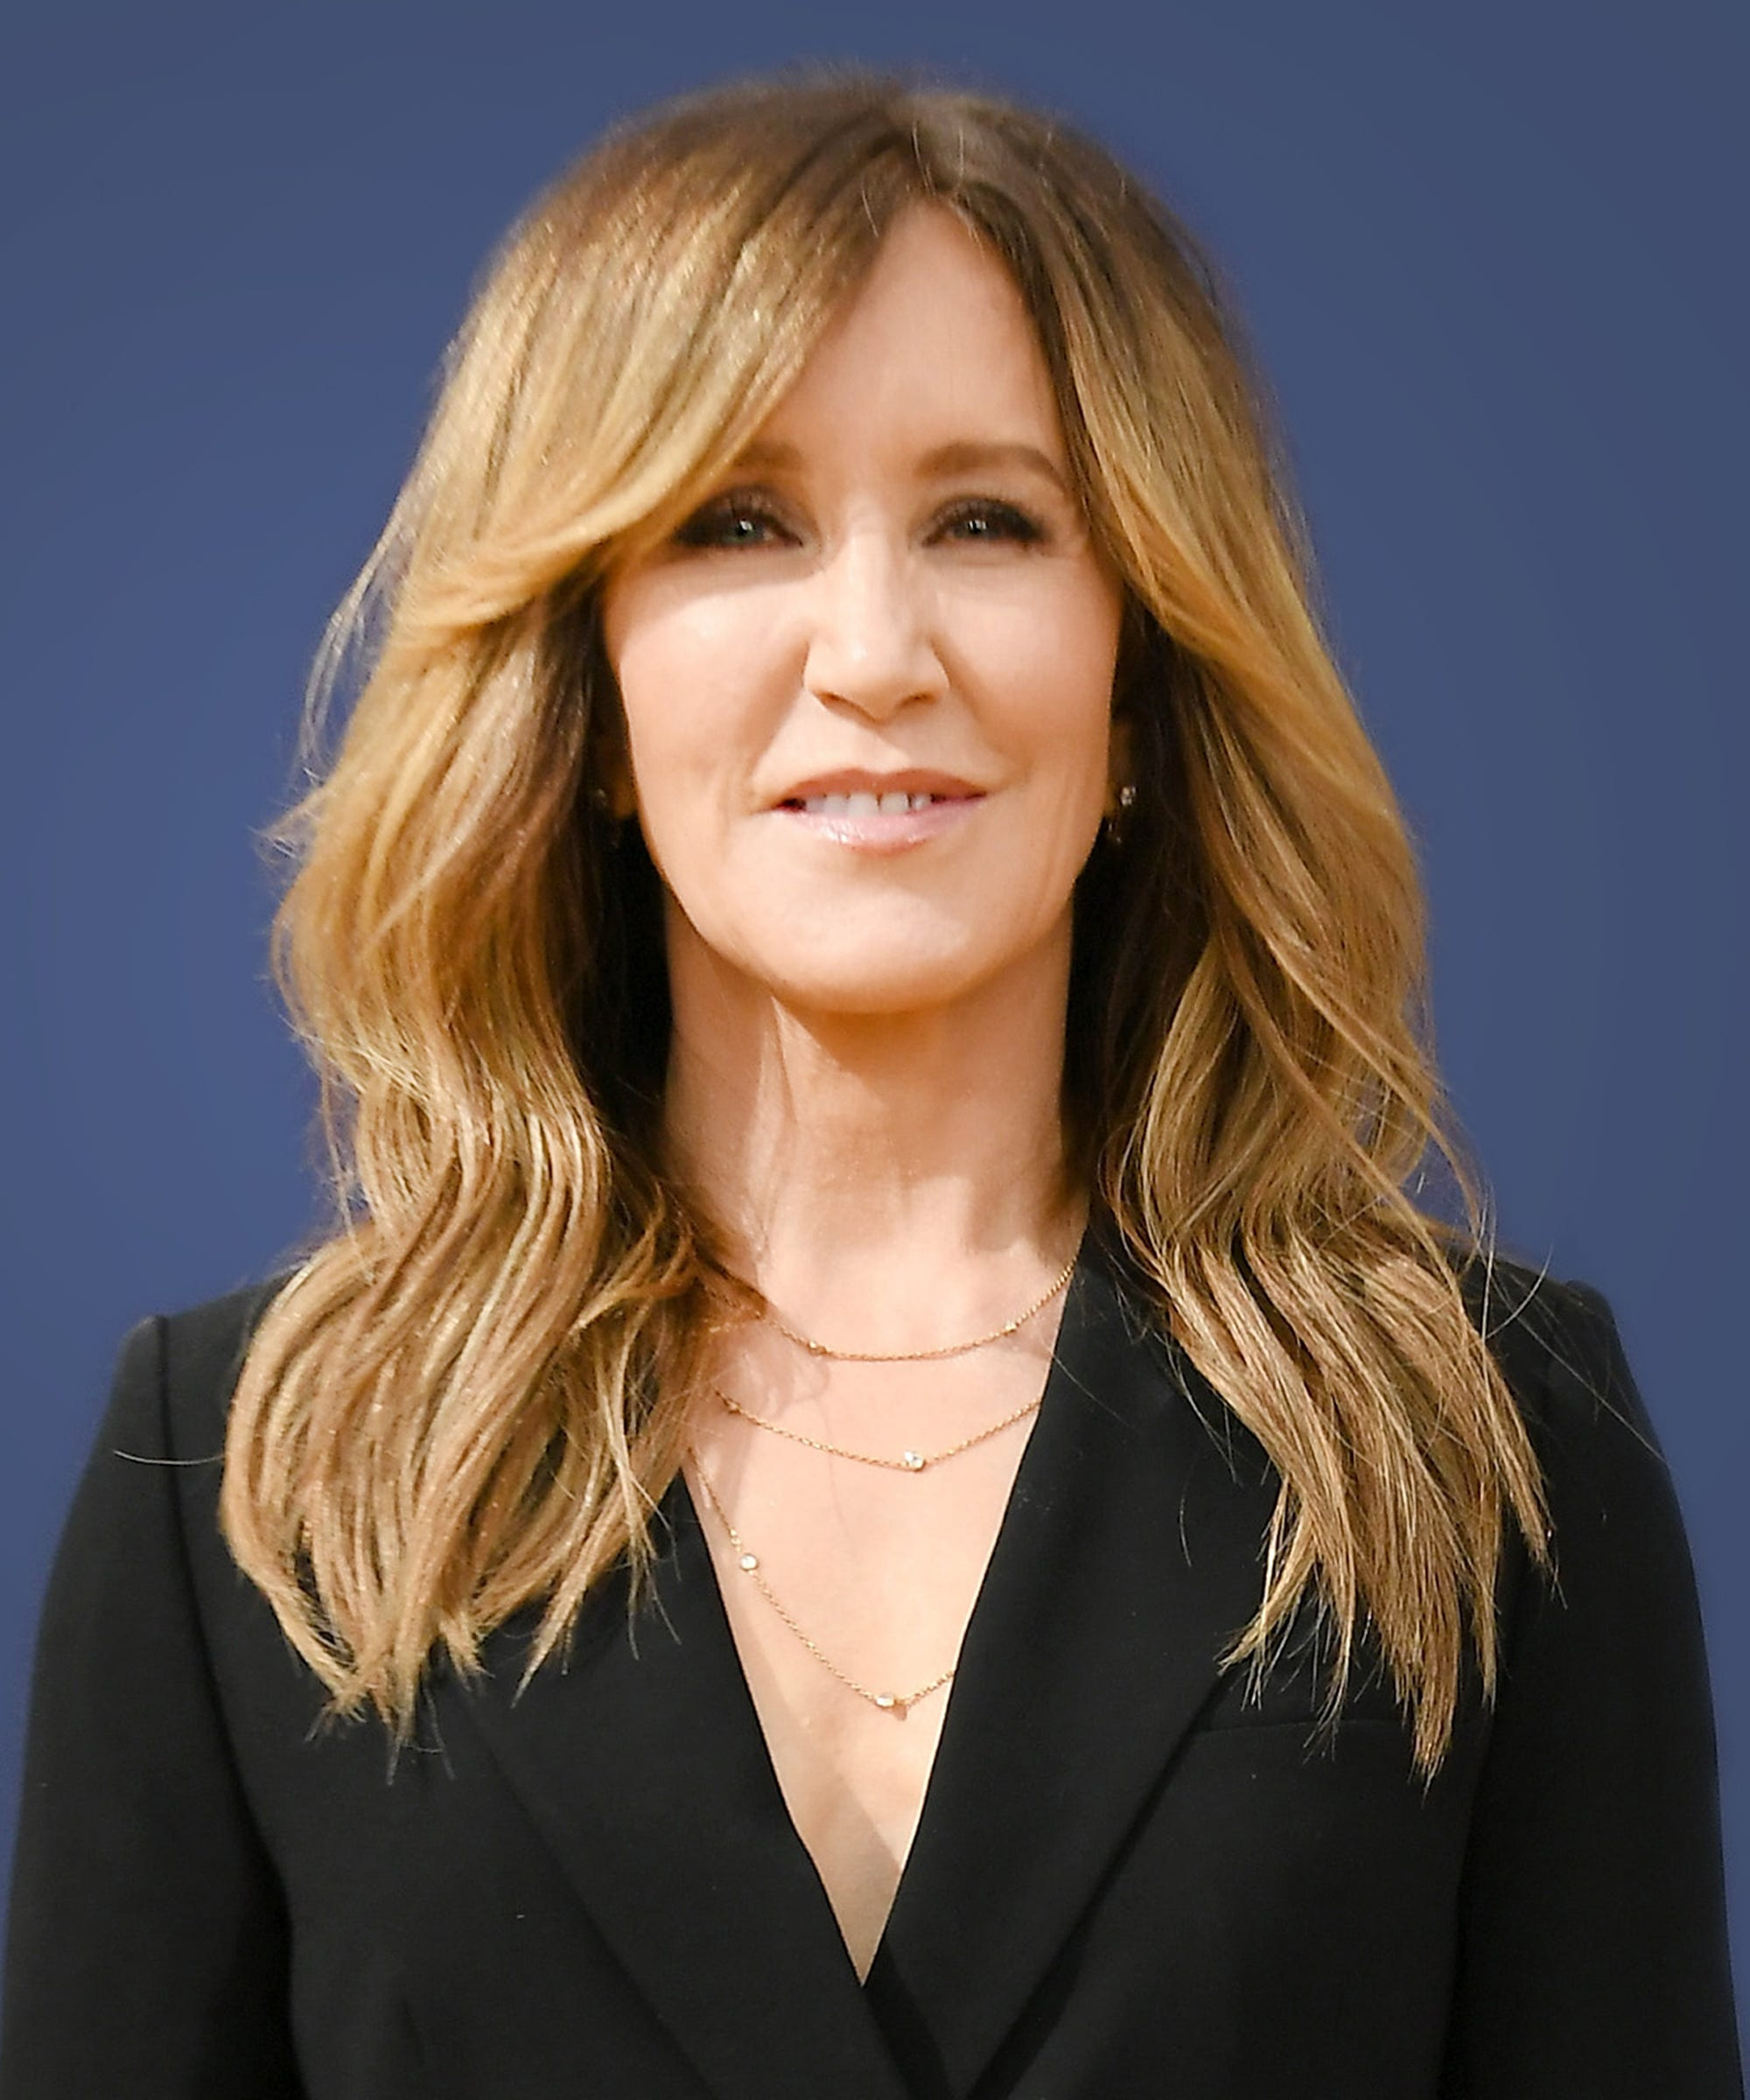 Felicity Huffman Deleted Her Social Media Accounts — But Not Before The Internet Got To Them